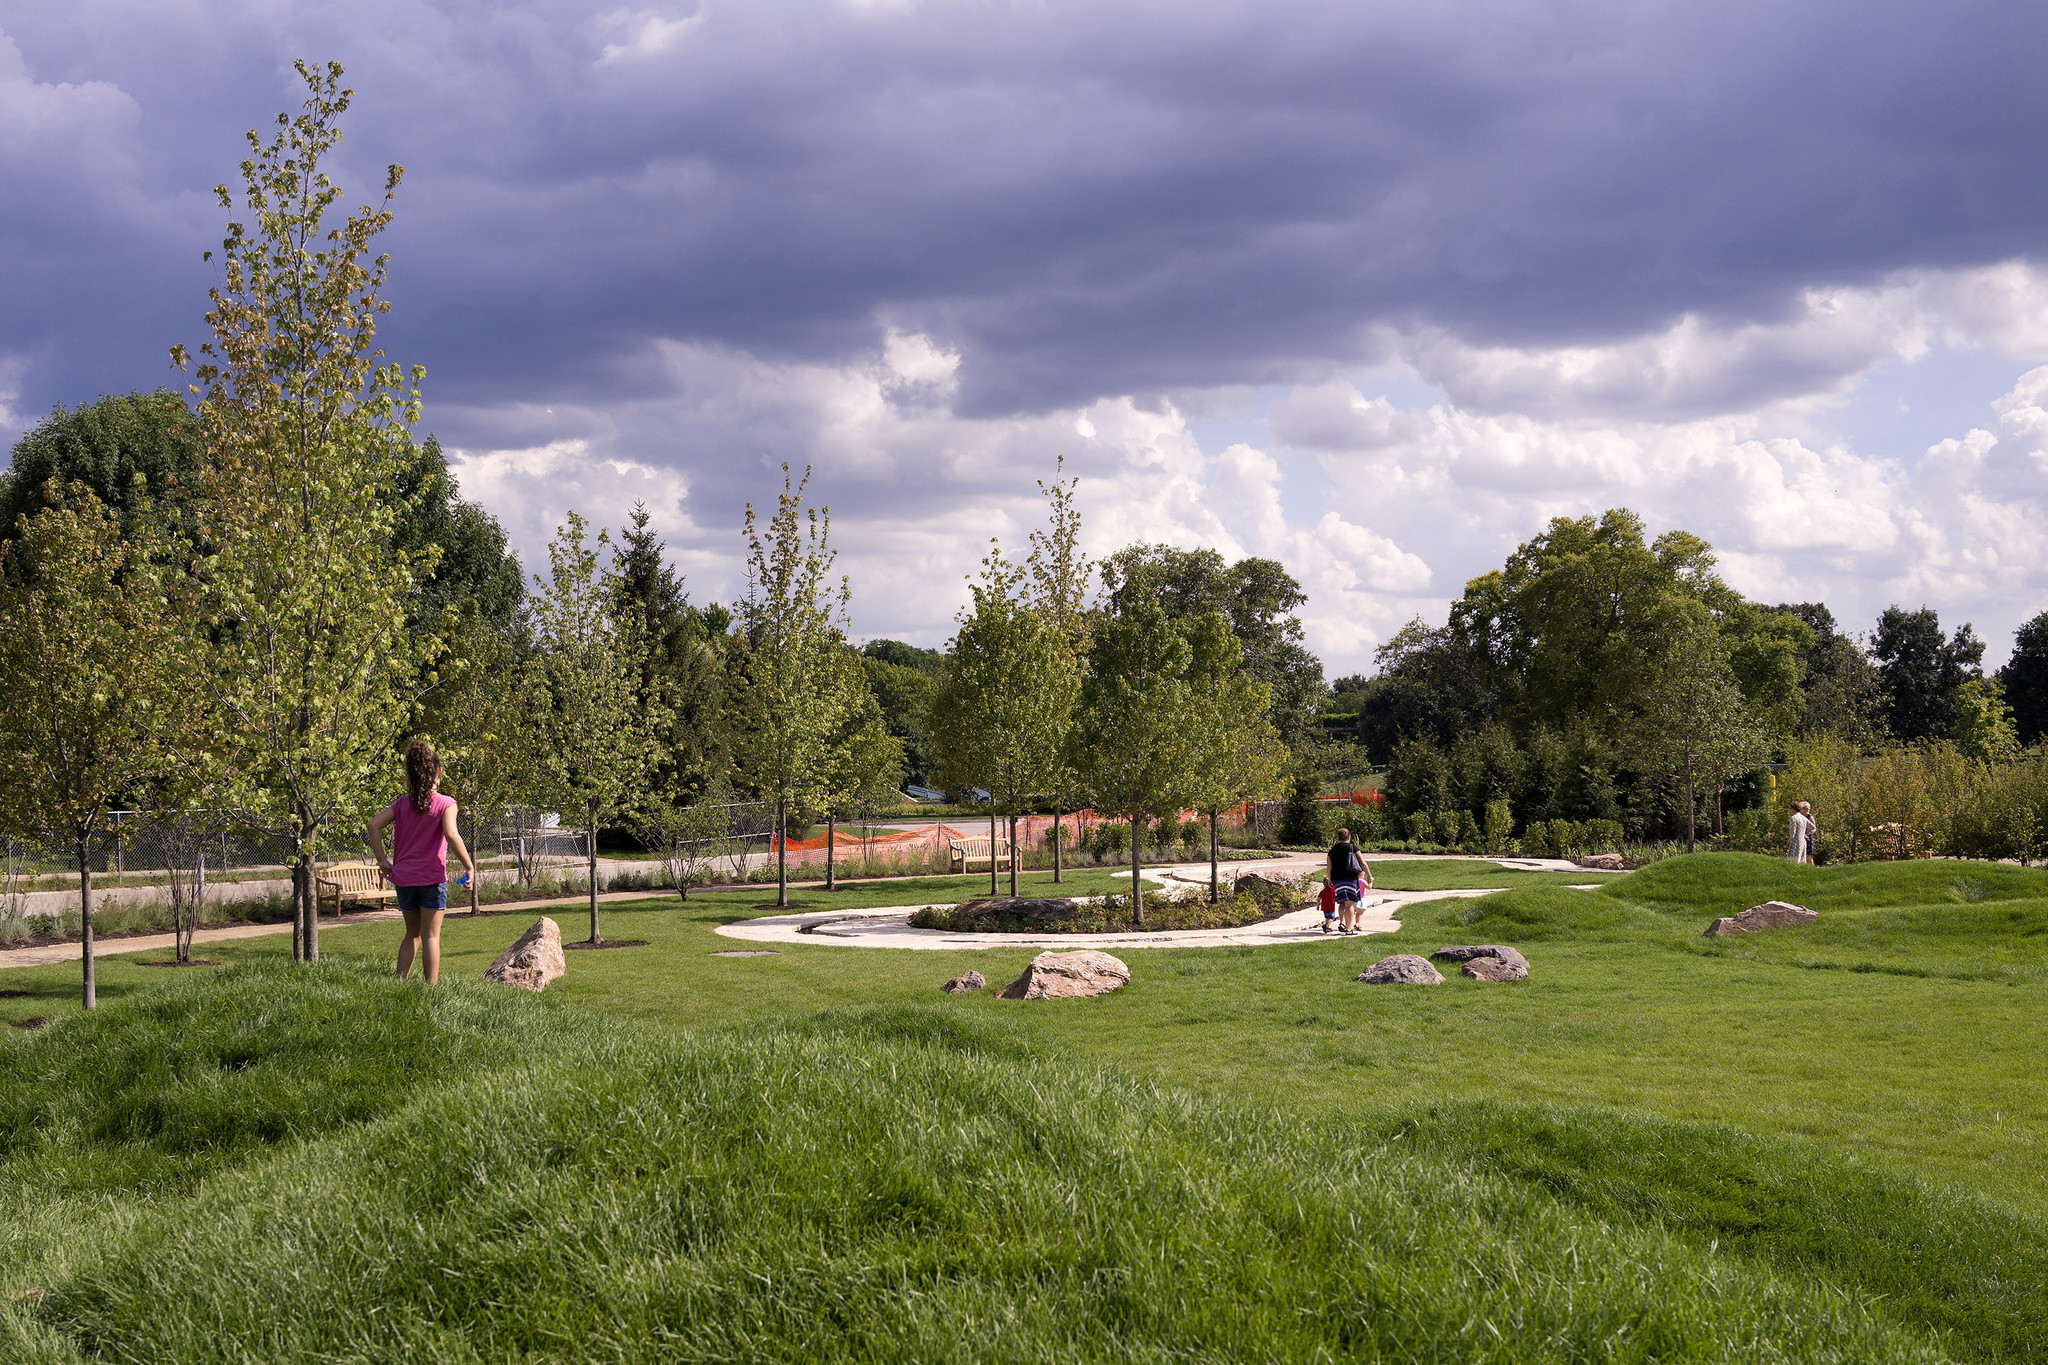 Garden Chicago: Chicago Botanic Garden Grows With $28M Learning Campus